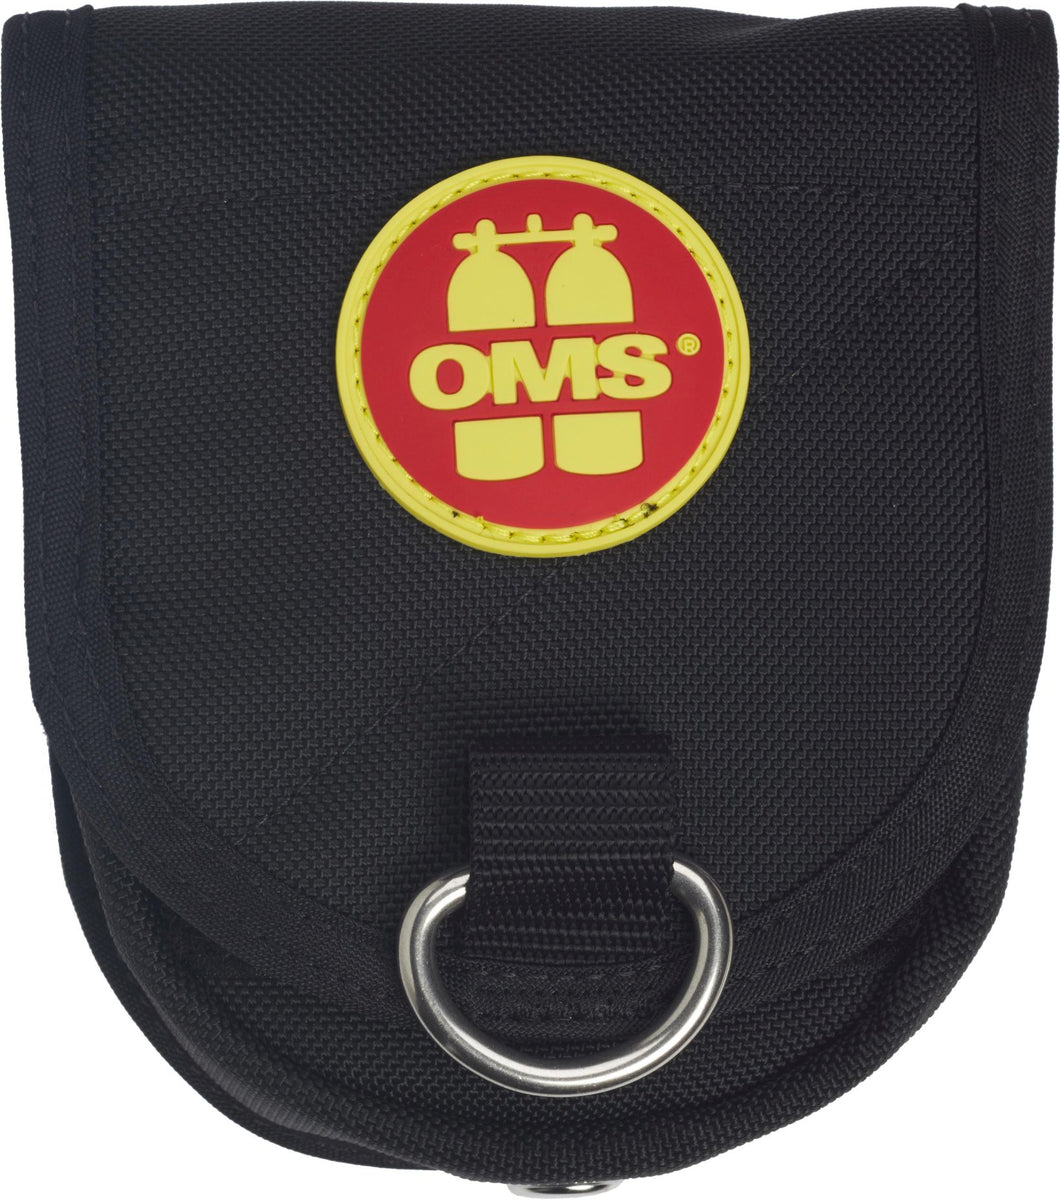 OMS Trim Weight Pocket 5 lb (2.3 kg), attaches to cylinders straps can be mounted horizontal or vertical